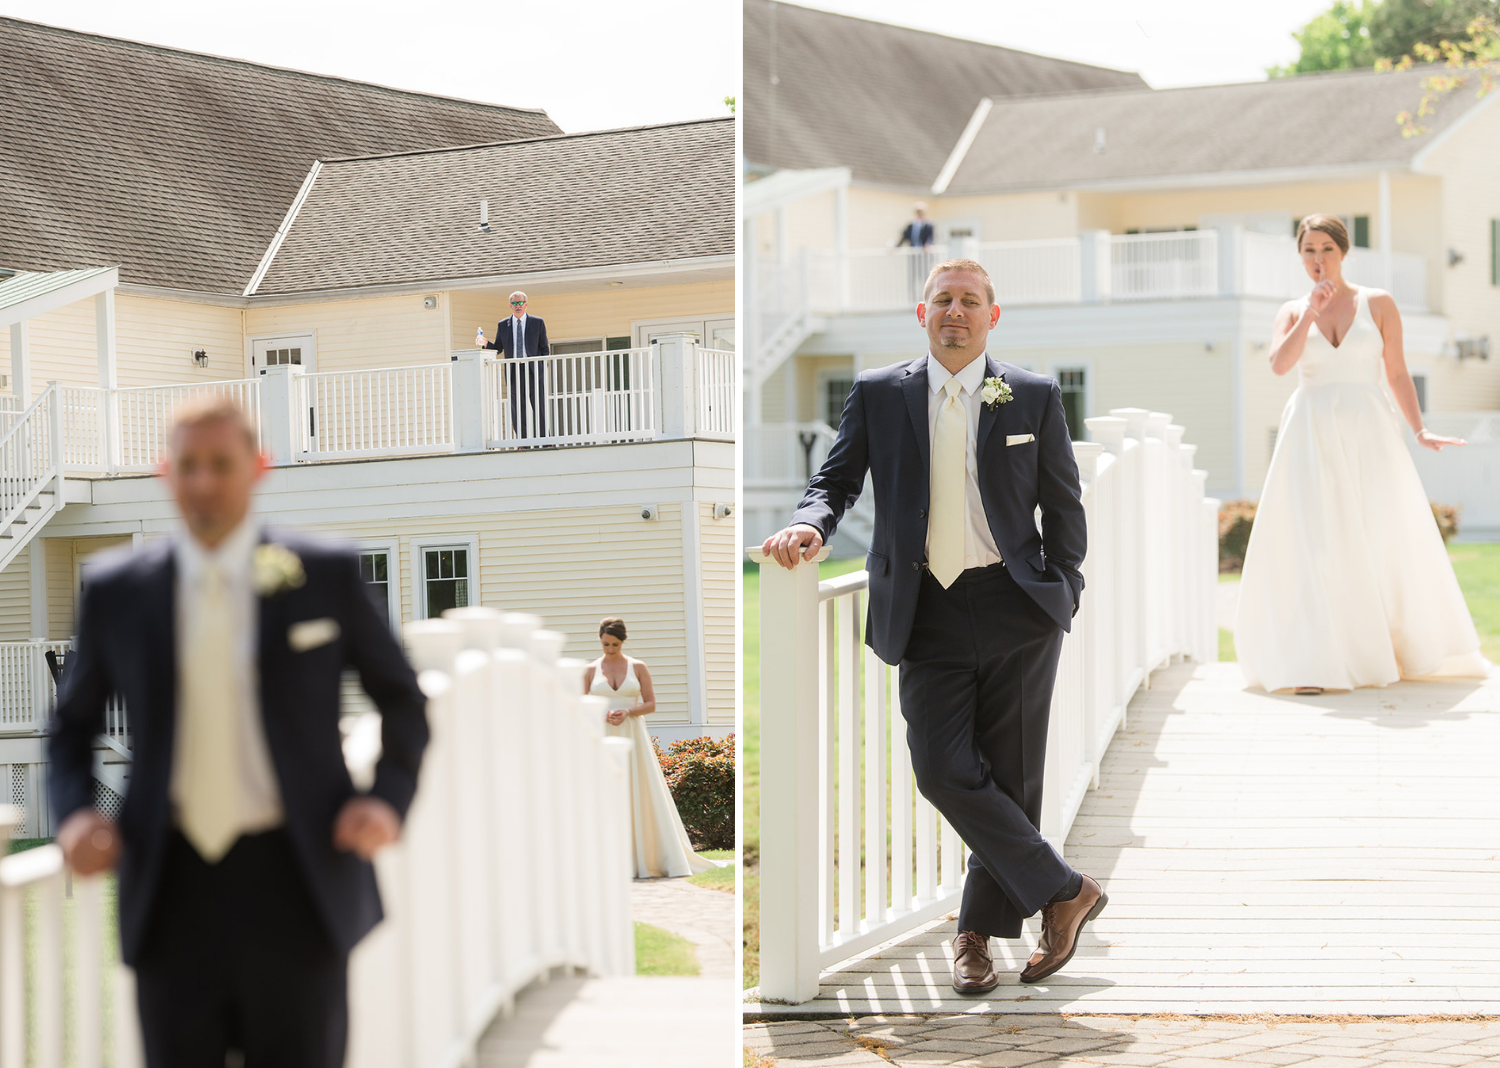 groom smiles as his bride stands behind him getting ready to have their first look